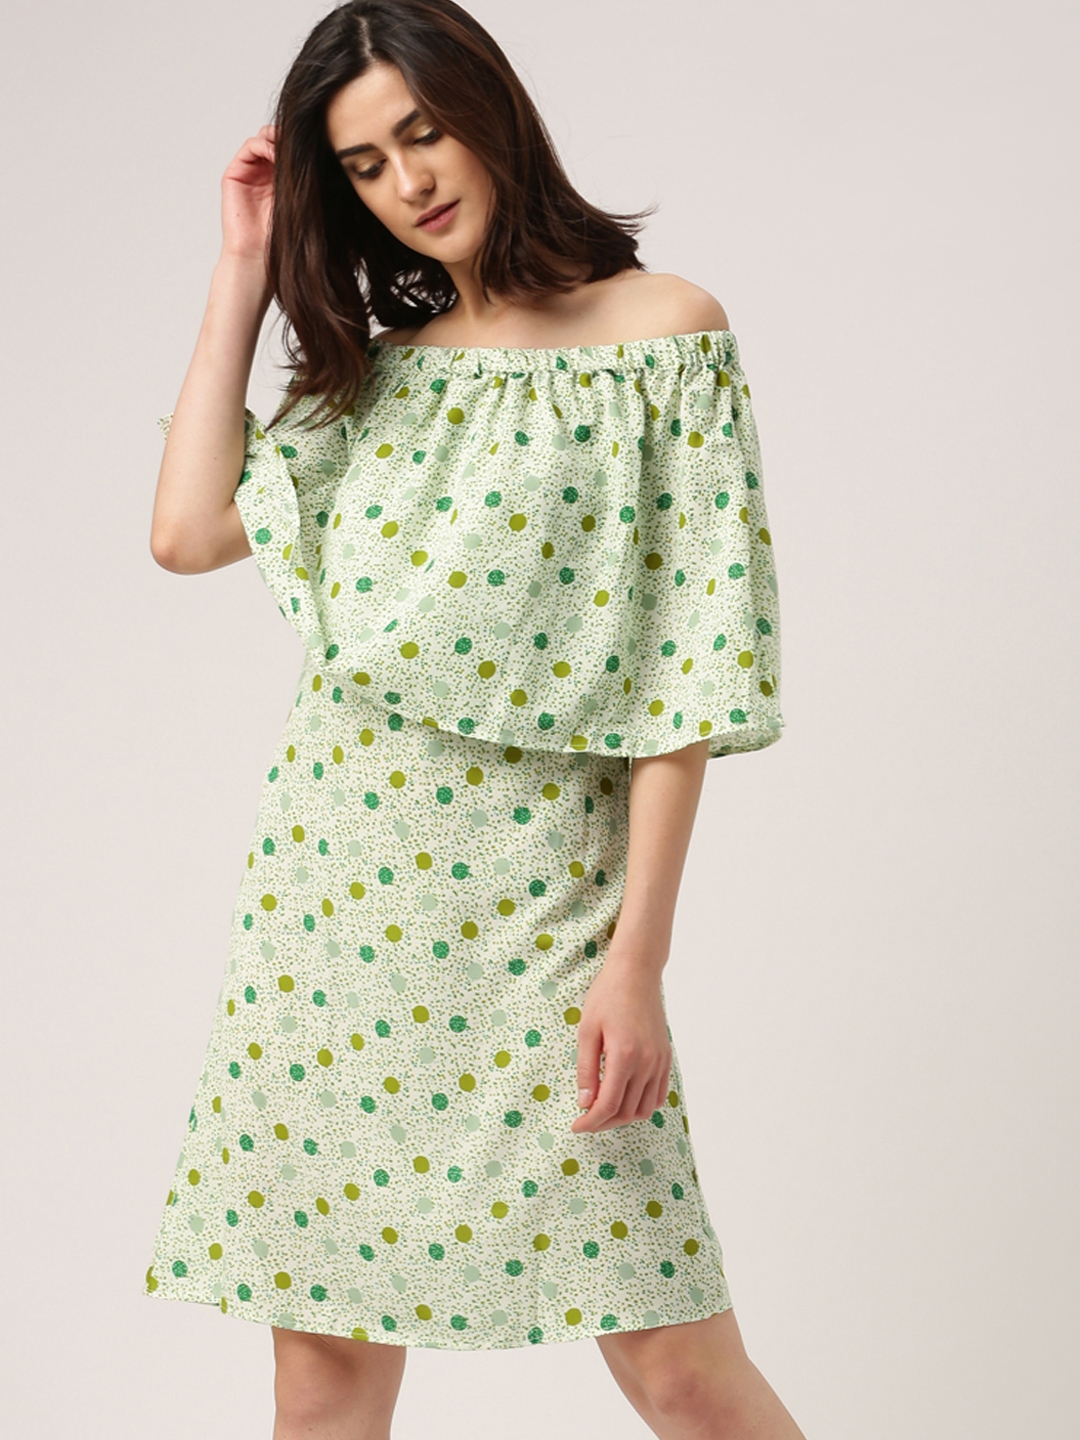 d7d187ea6cd1 All About You from Deepika Padukone Off-White   Green Printed Off-Shoulder  Dress